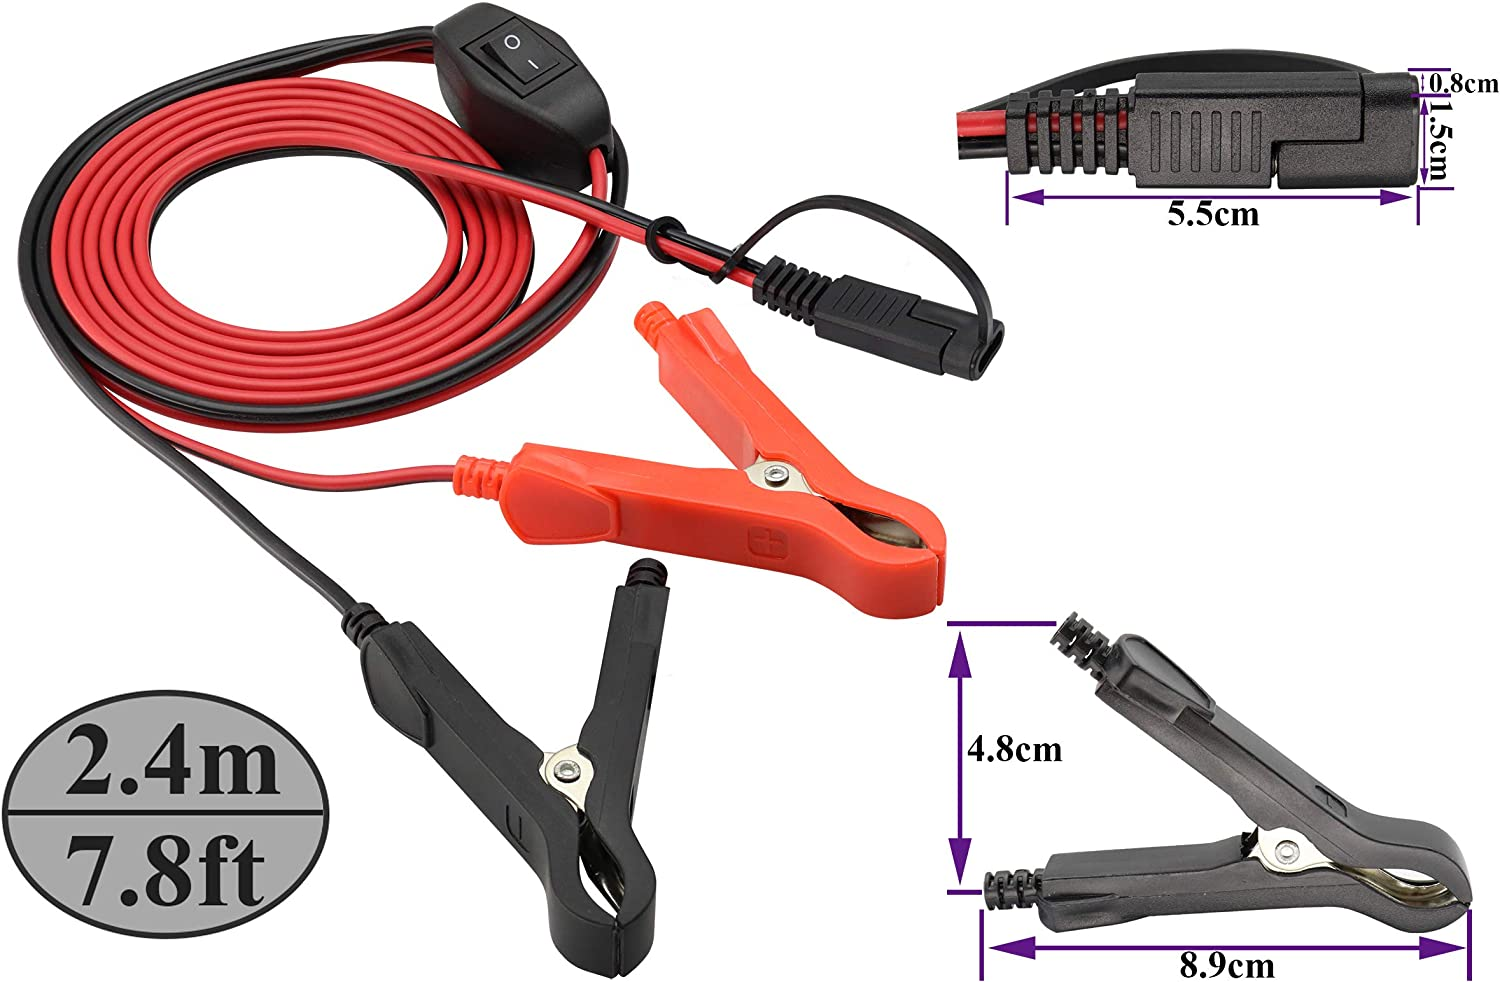 AAOTOKK SAE Extension Cable 16 AWG Wire Harness SAE to Battery Alligator Crocodile Clip12V DC Extension Cord with Switch Quick Connect//Disconnect Snap Action Cable 2.4m//7.8ft-Fuseless Box